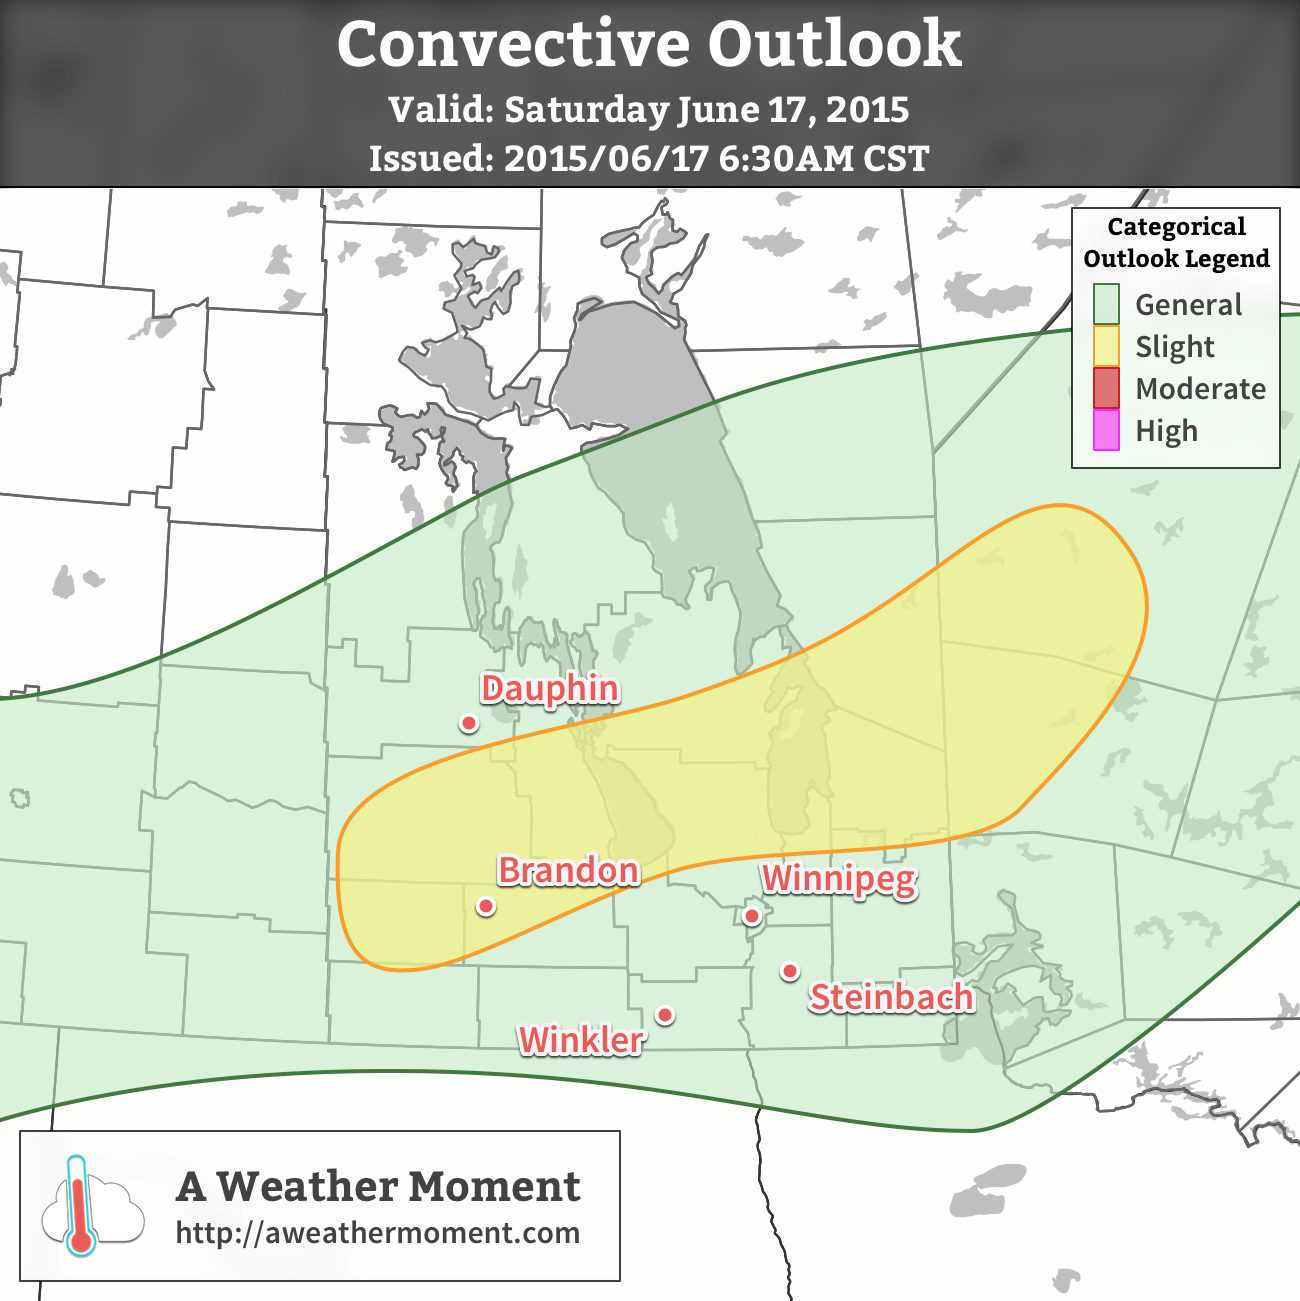 AWM Convective Outlook for June 17, 2015